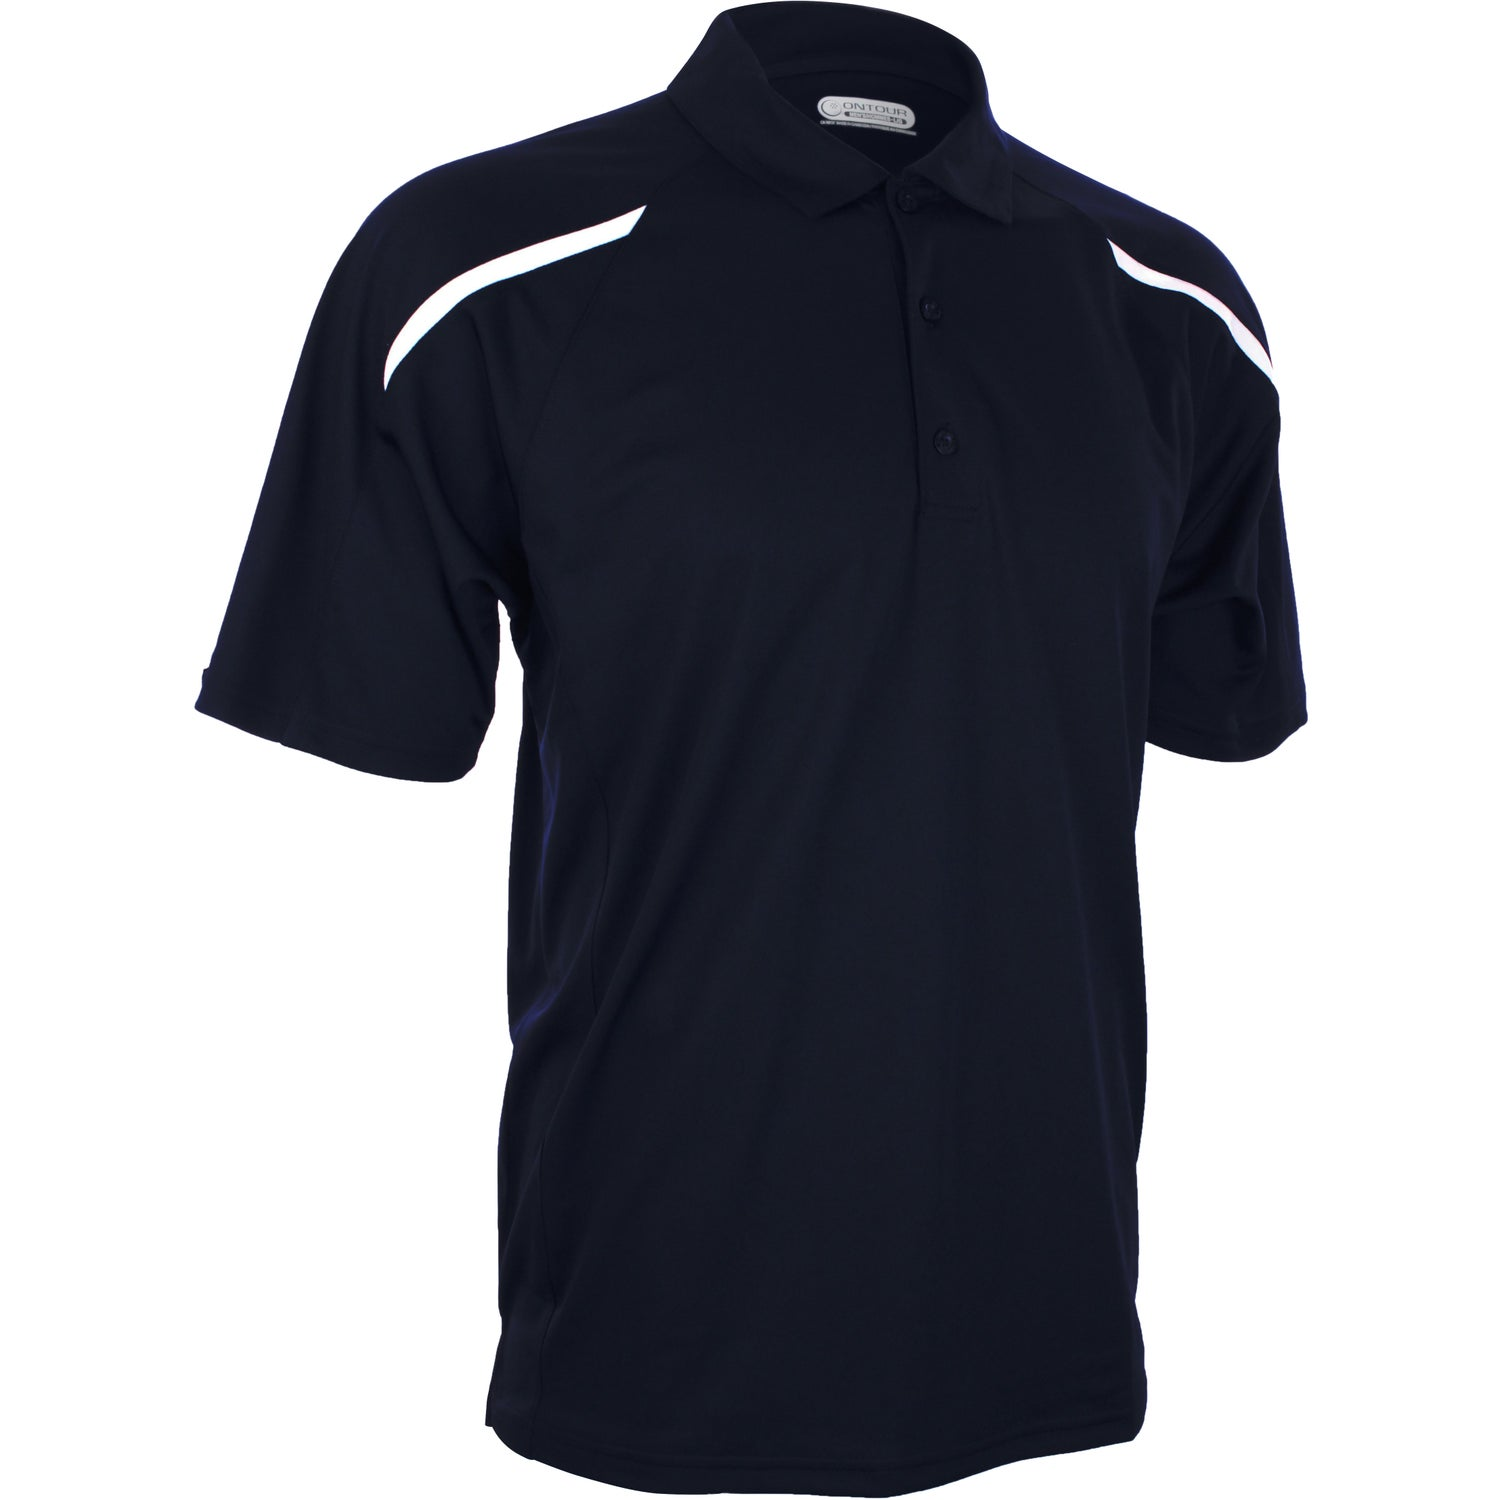 Nyos short sleeve polo shirt by trimark men 39 s for Quality polo shirts with company logo